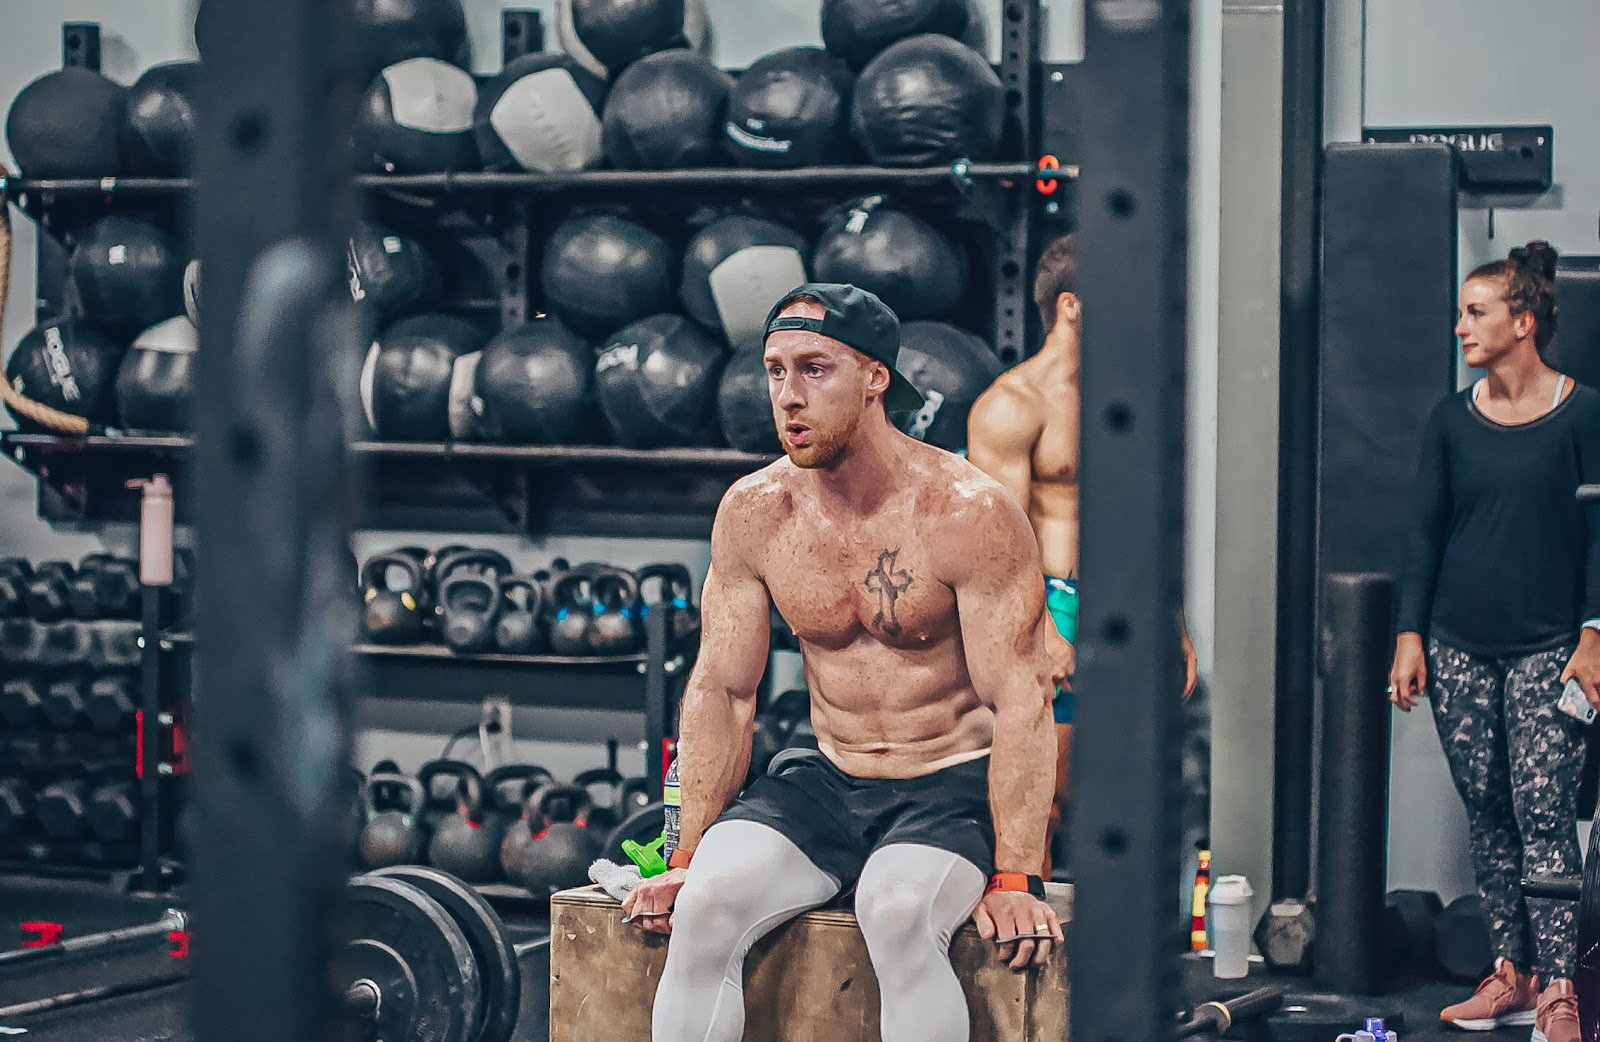 full body crossfit workout at home